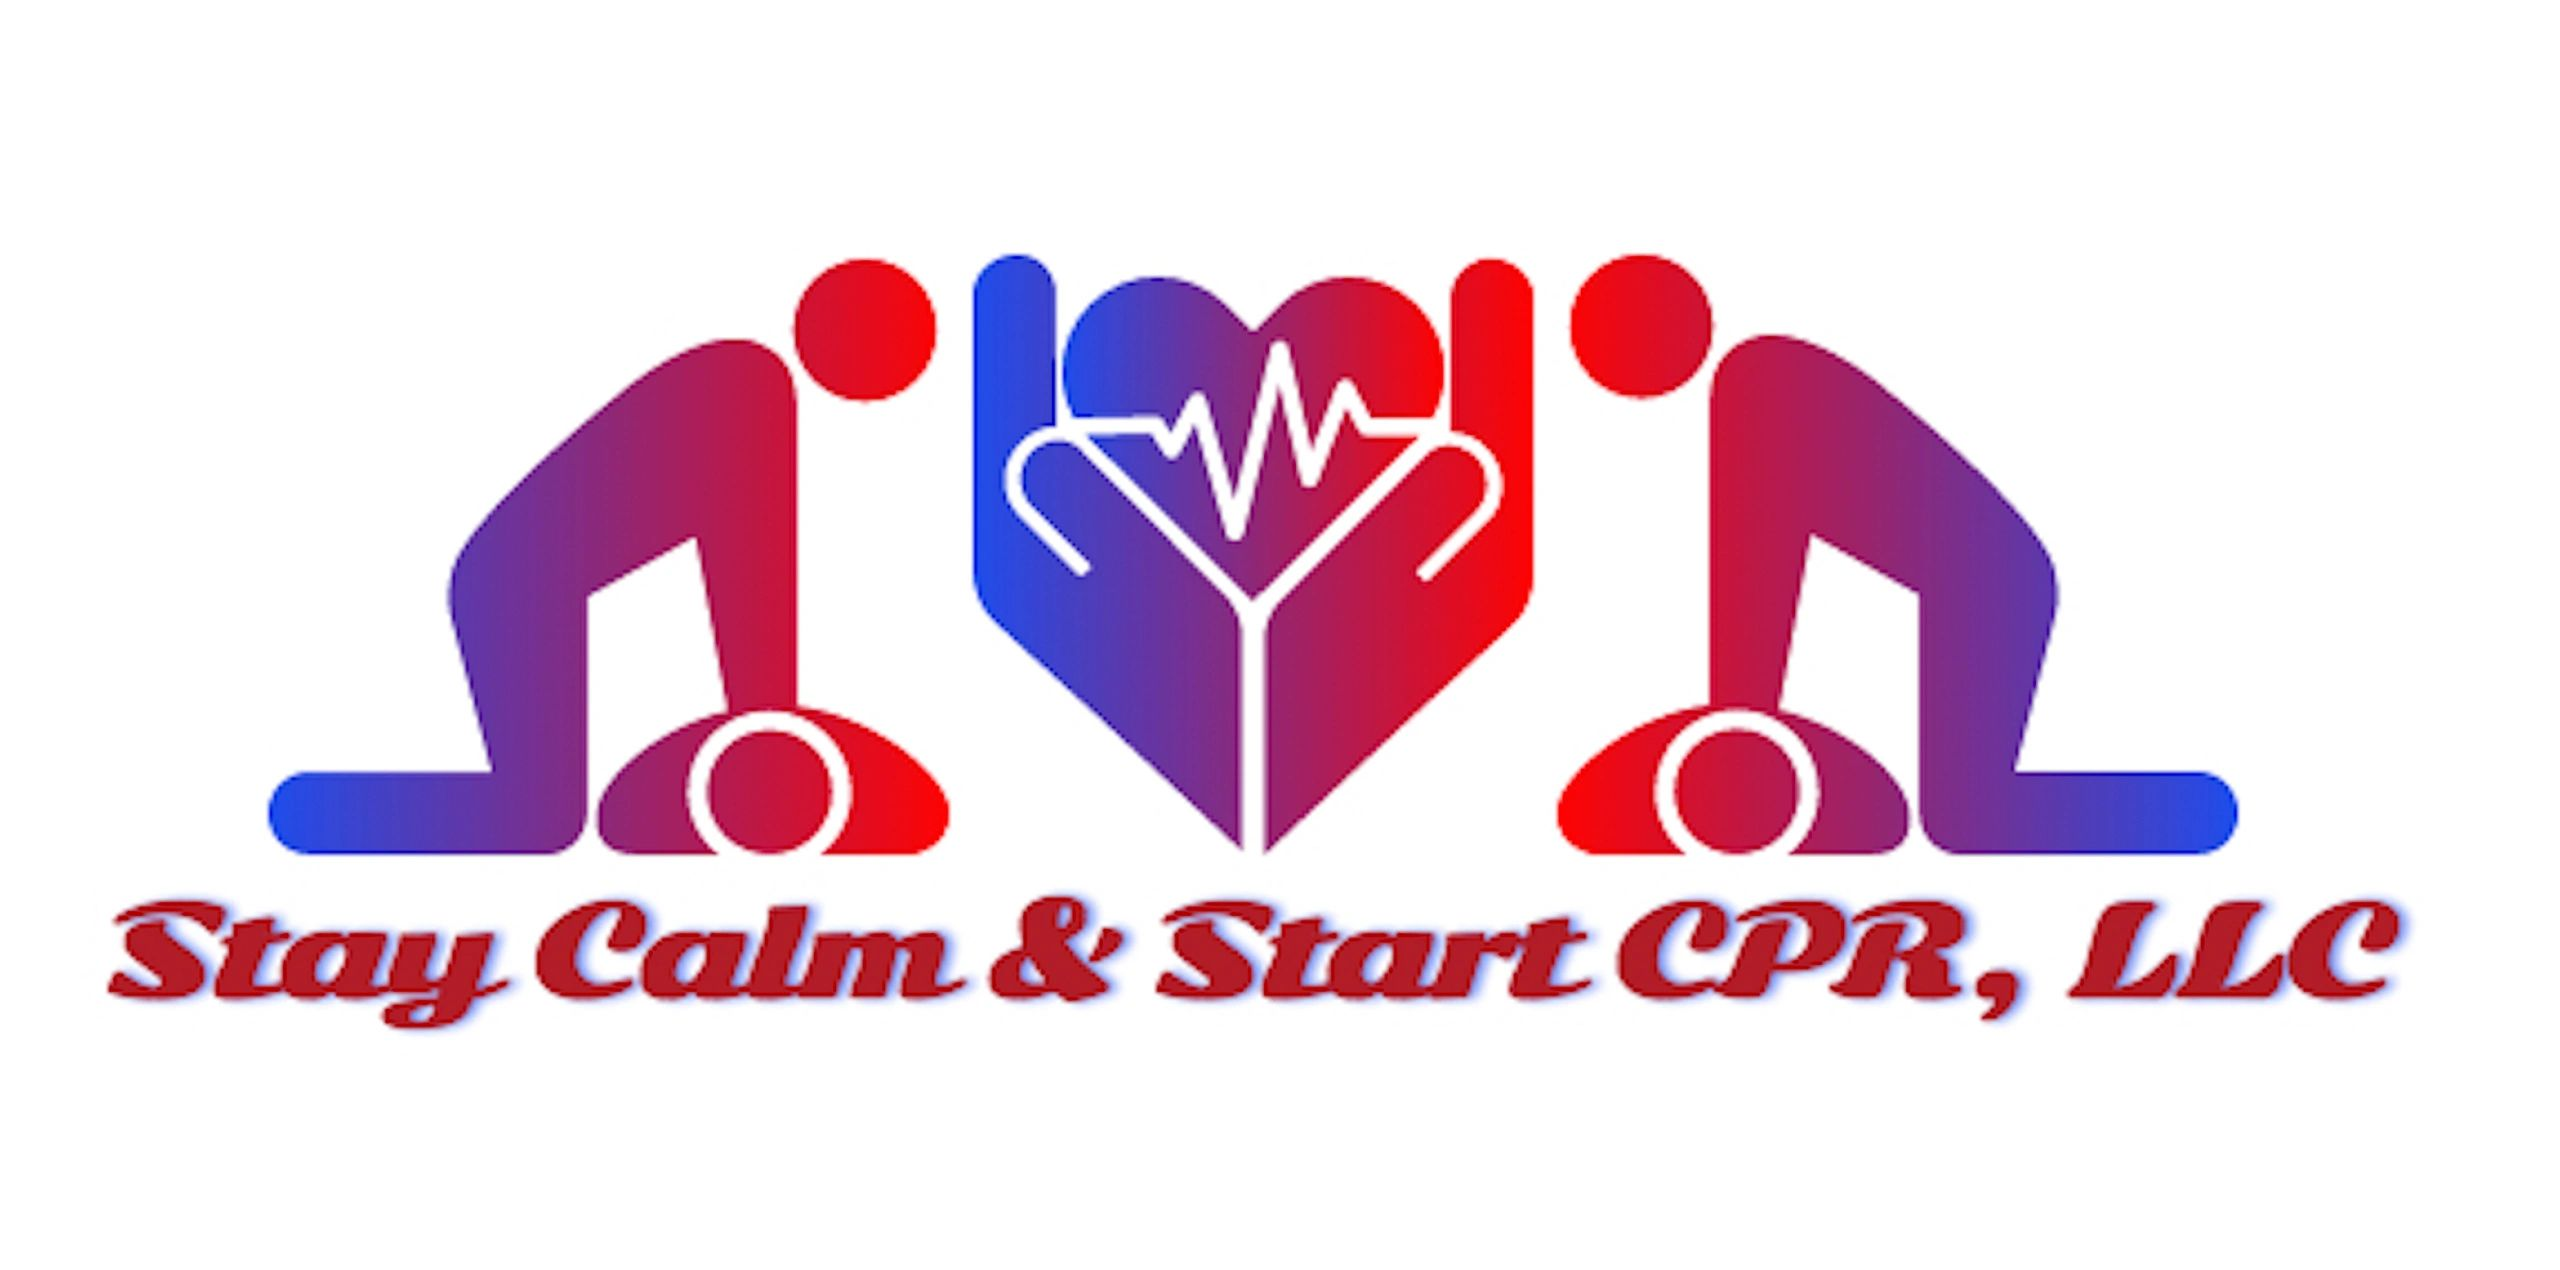 Cpr And First Aid Classes Stay Calm And Start Cpr Llc Stay Calm